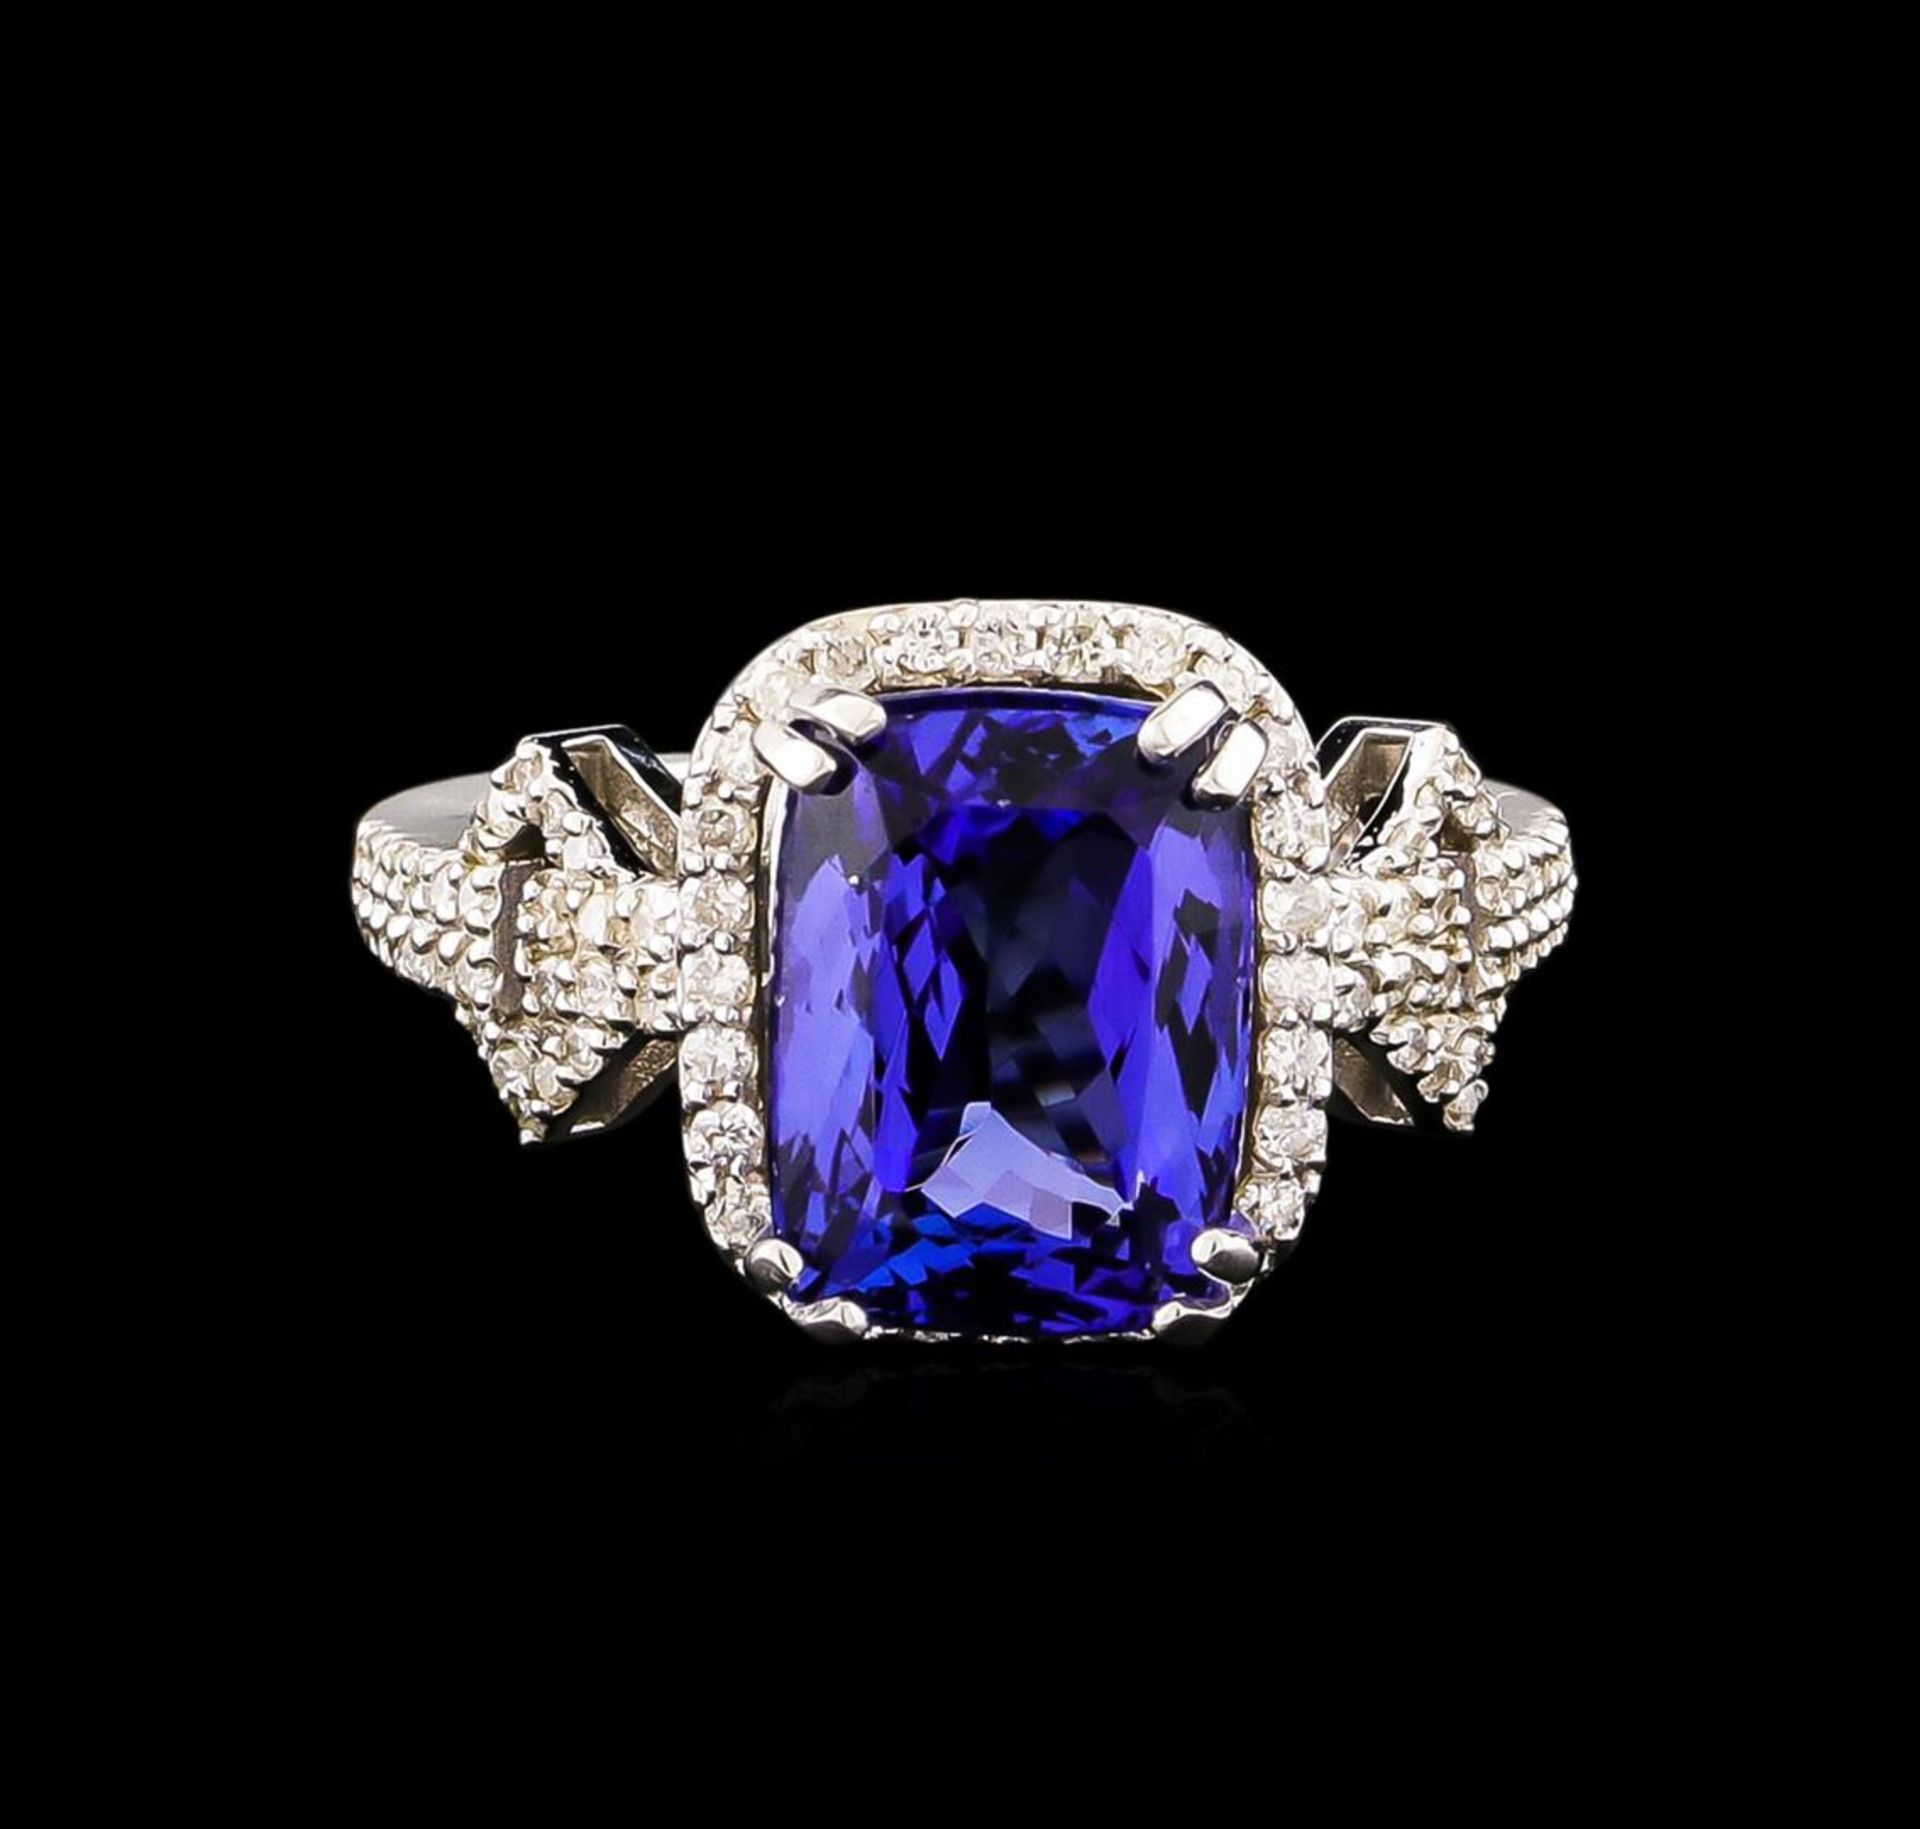 14KT White Gold 3.40 ctw Tanzanite and Diamond Ring - Image 2 of 5